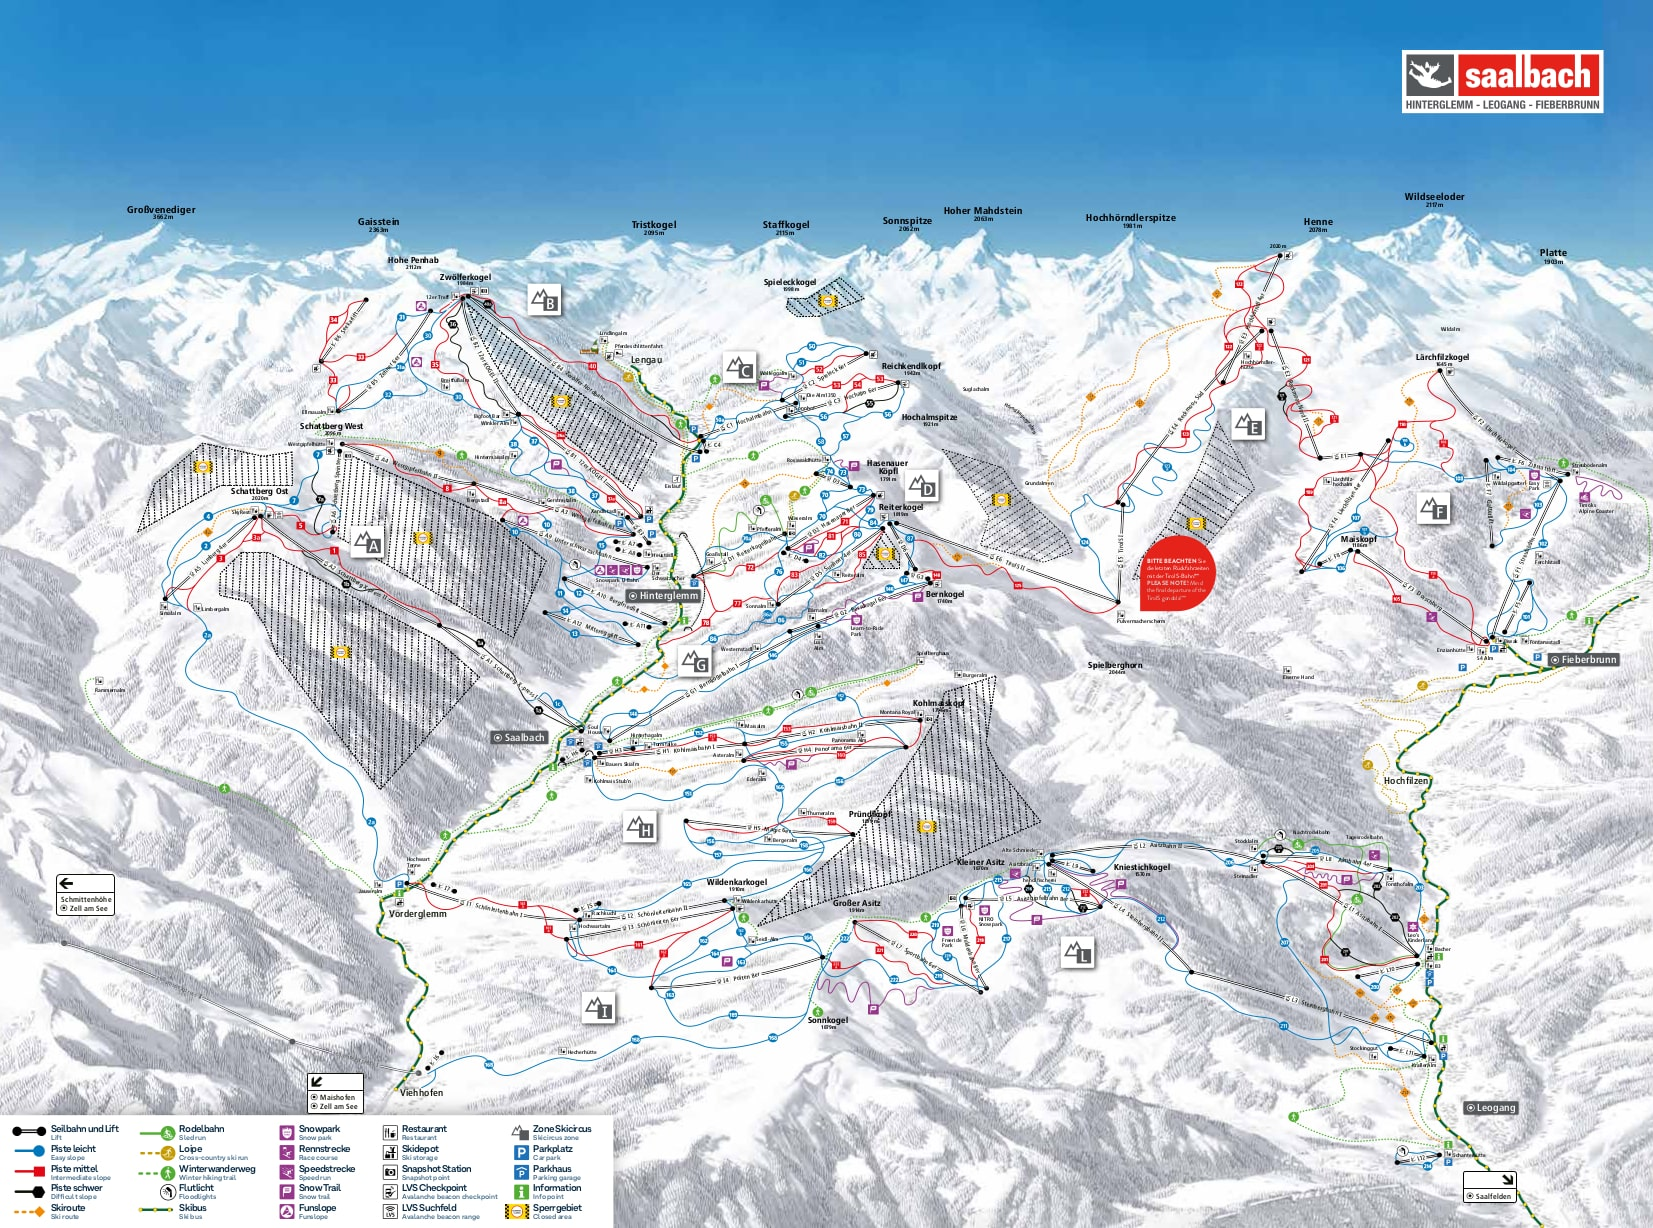 Saalbach Hinterglemm Piste / Trail Map